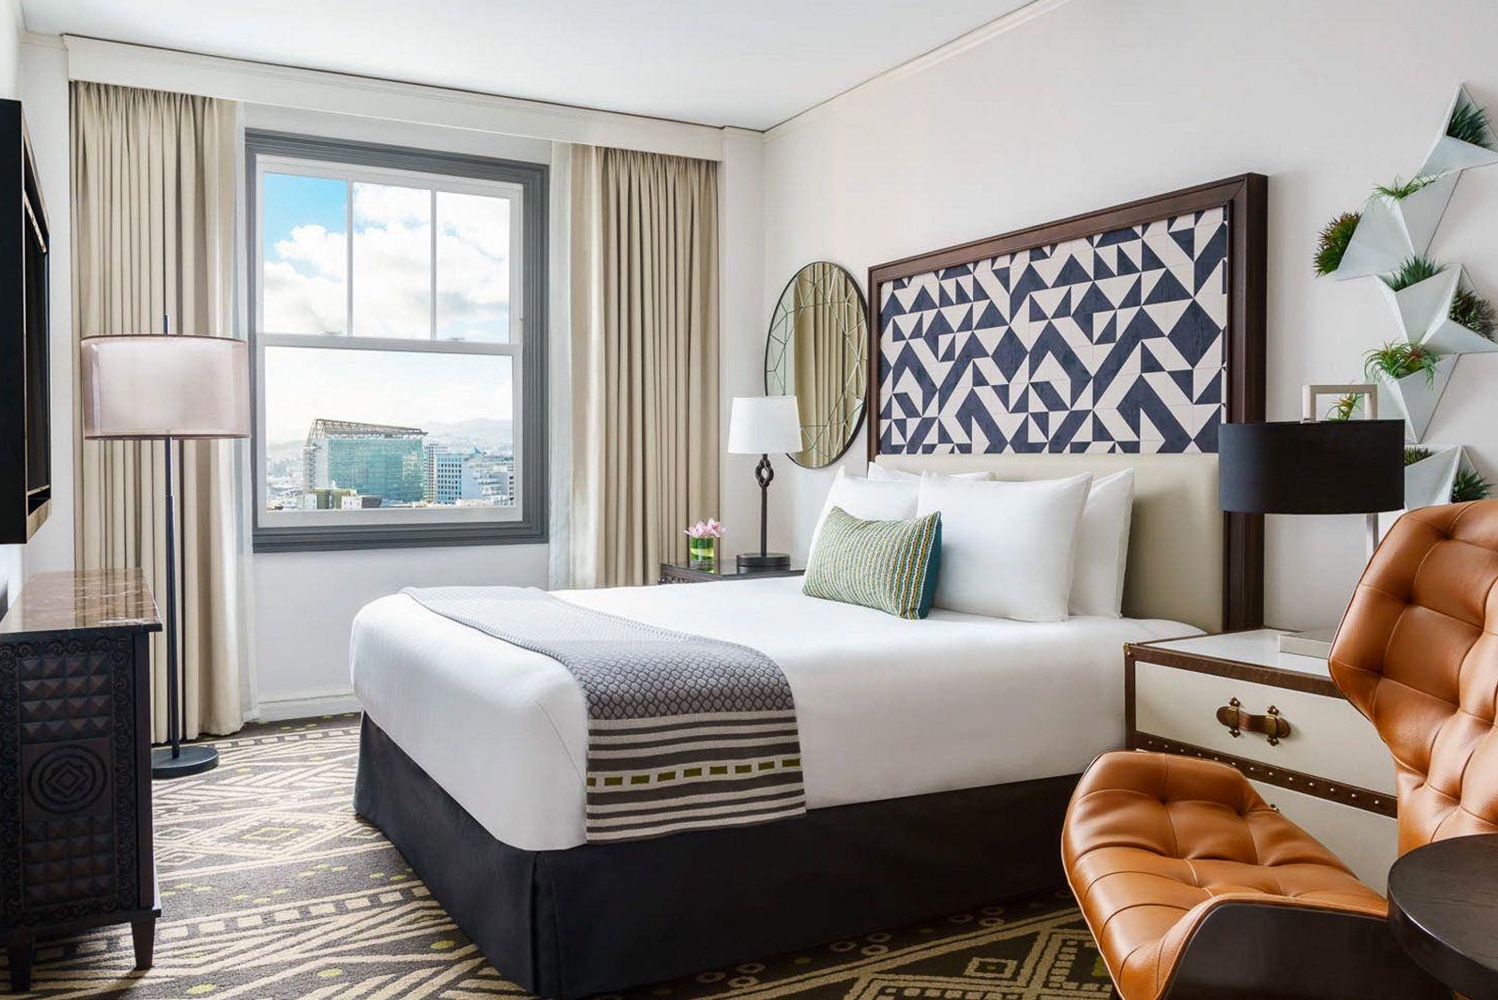 San Francisco's Serrano Hotel is undergoing a $16 million renovation that – upon completion this April – will see the property rebranded as the Hotel Spero.